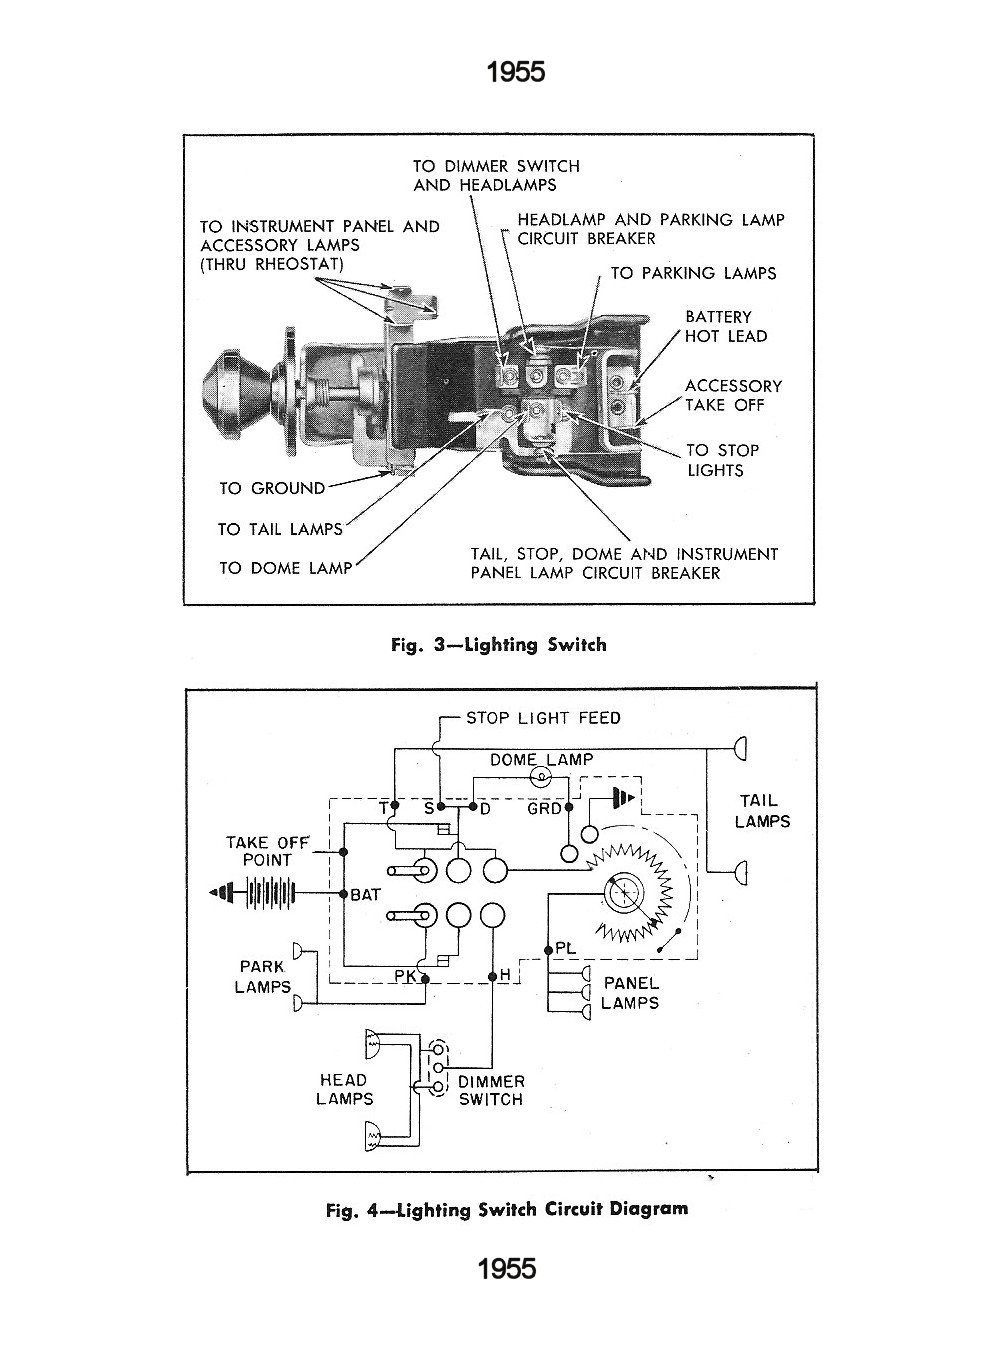 55csm1204a chevy wiring diagrams 66 Chevy Headlight Switch Wiring Diagram at bayanpartner.co